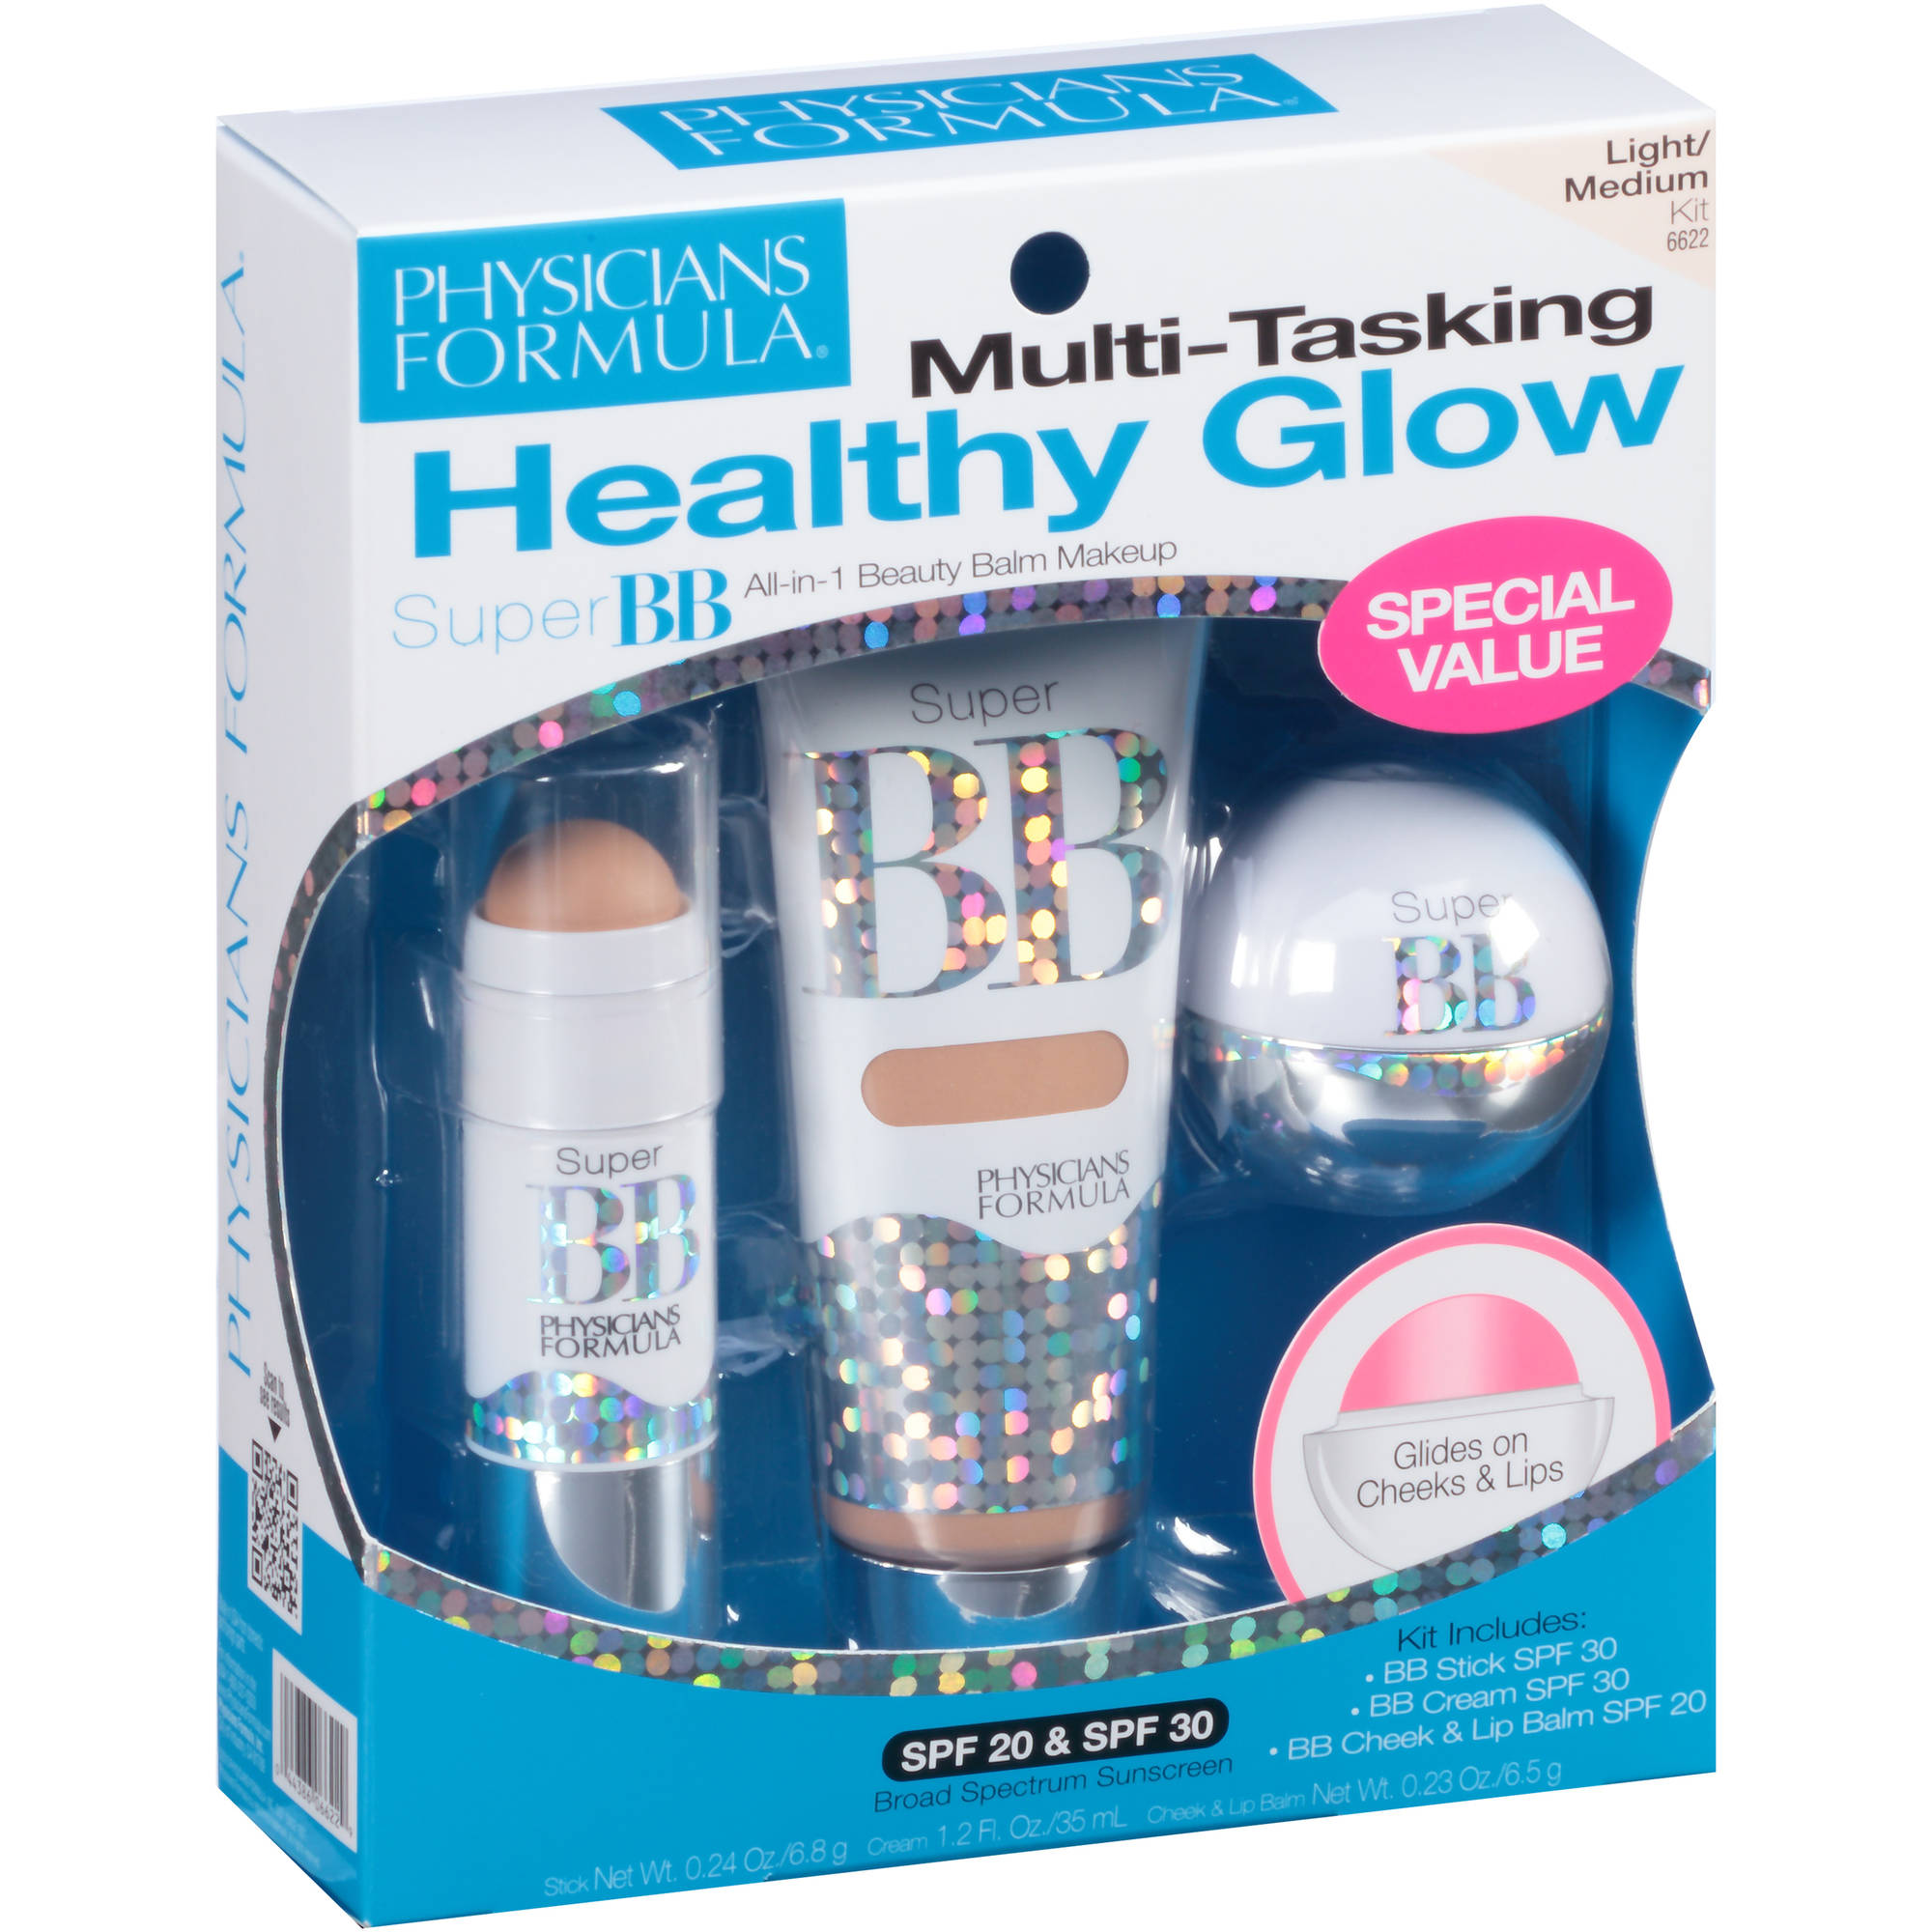 Physician's Formula Healthy Glow Super BB Beauty Balm Makeup Kit, Light/Medium, 3 pc